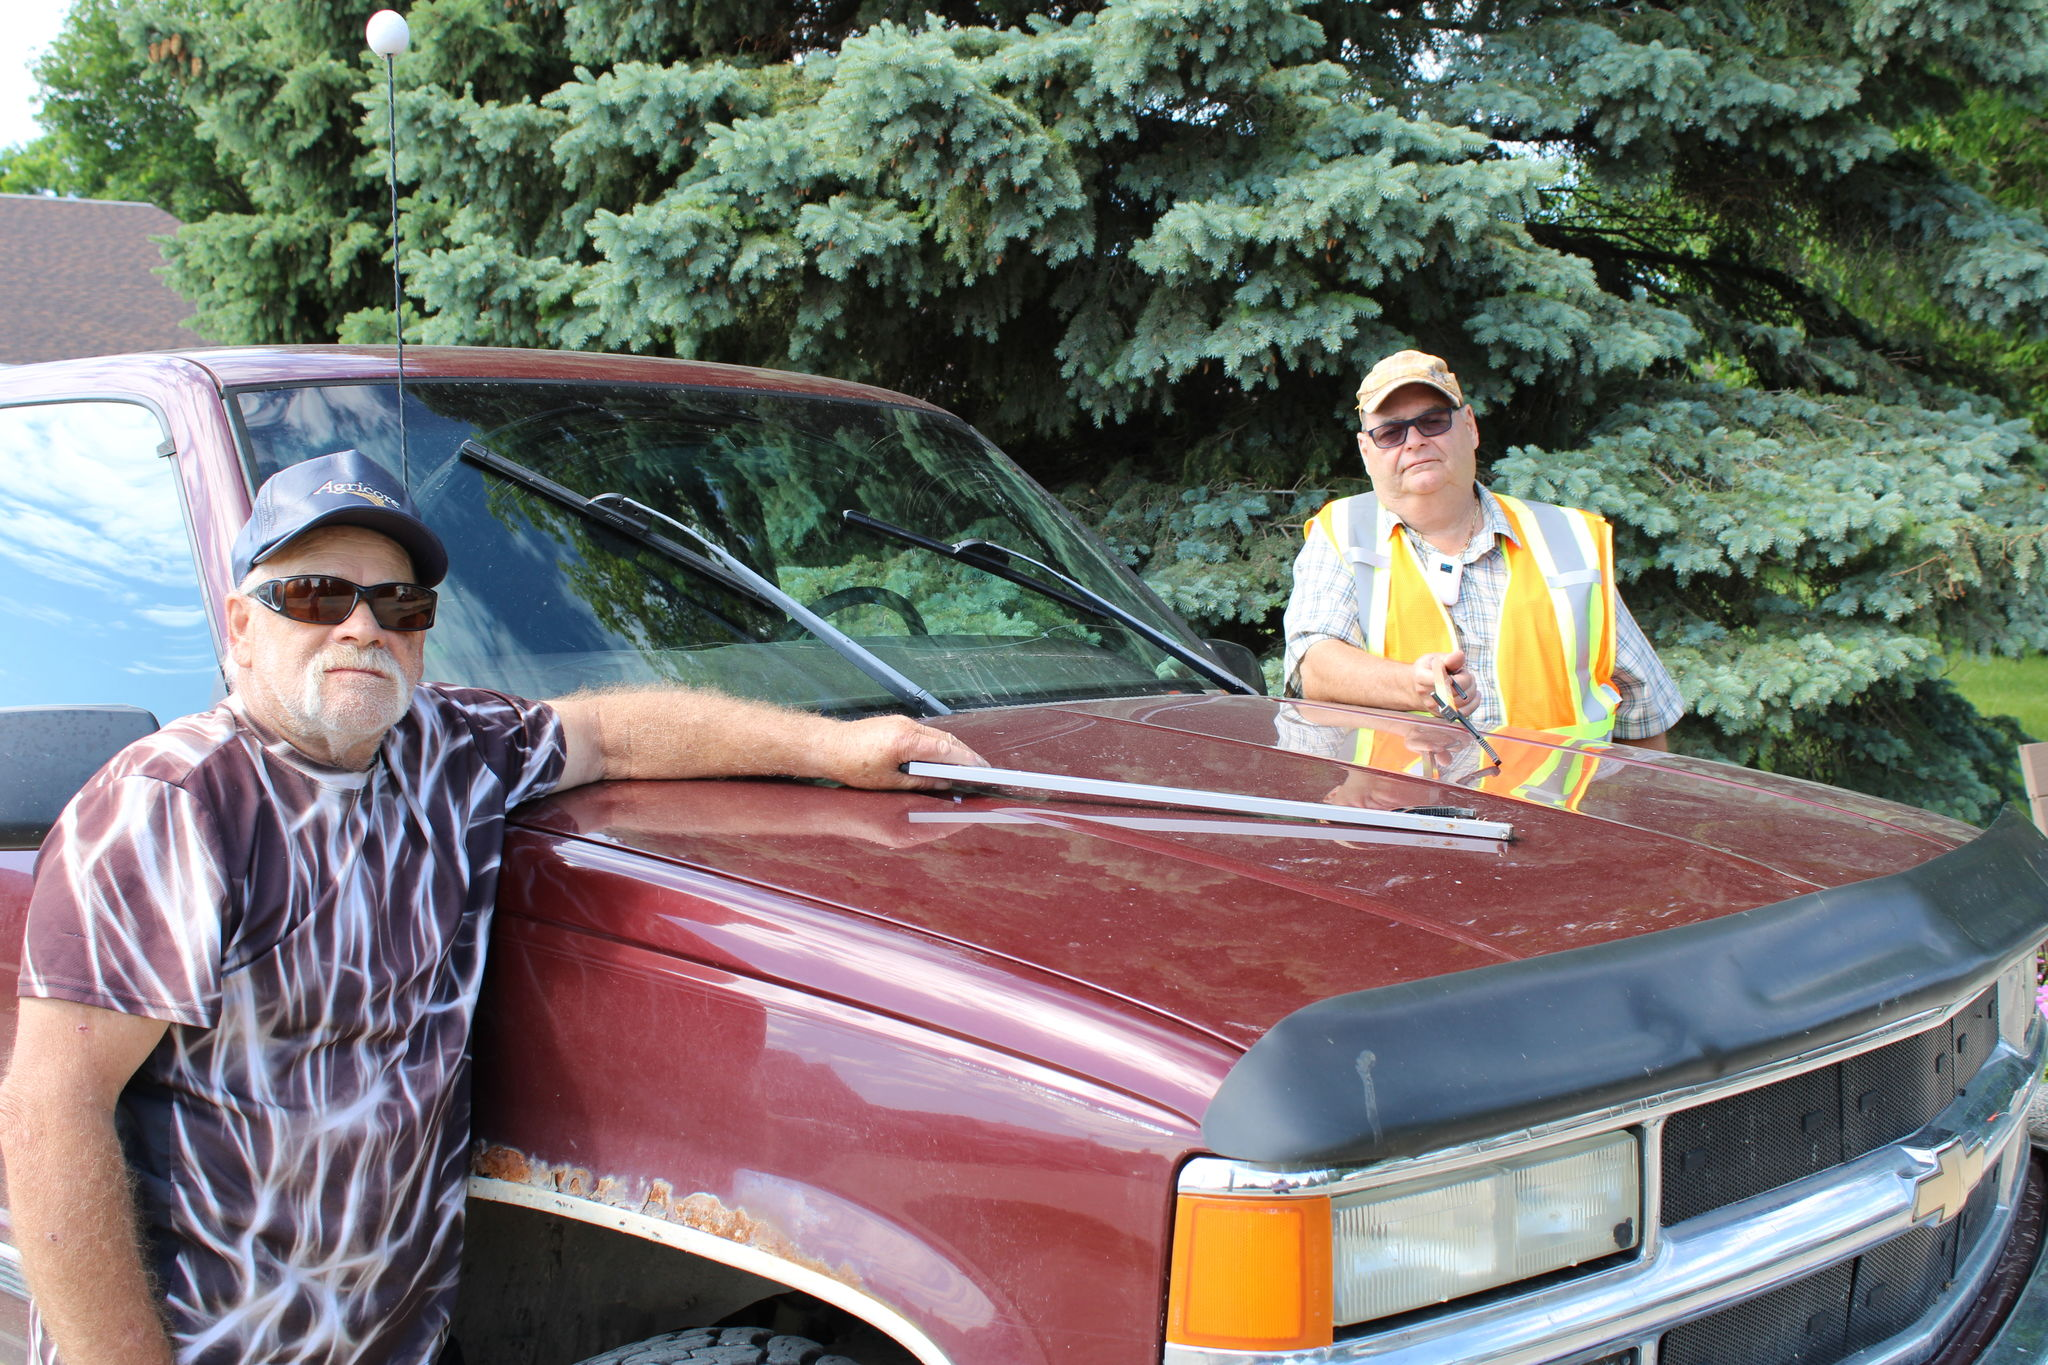 Abe Krause and Cecil Bayliss with the truck they use to canvas the countryside in search of garbage.